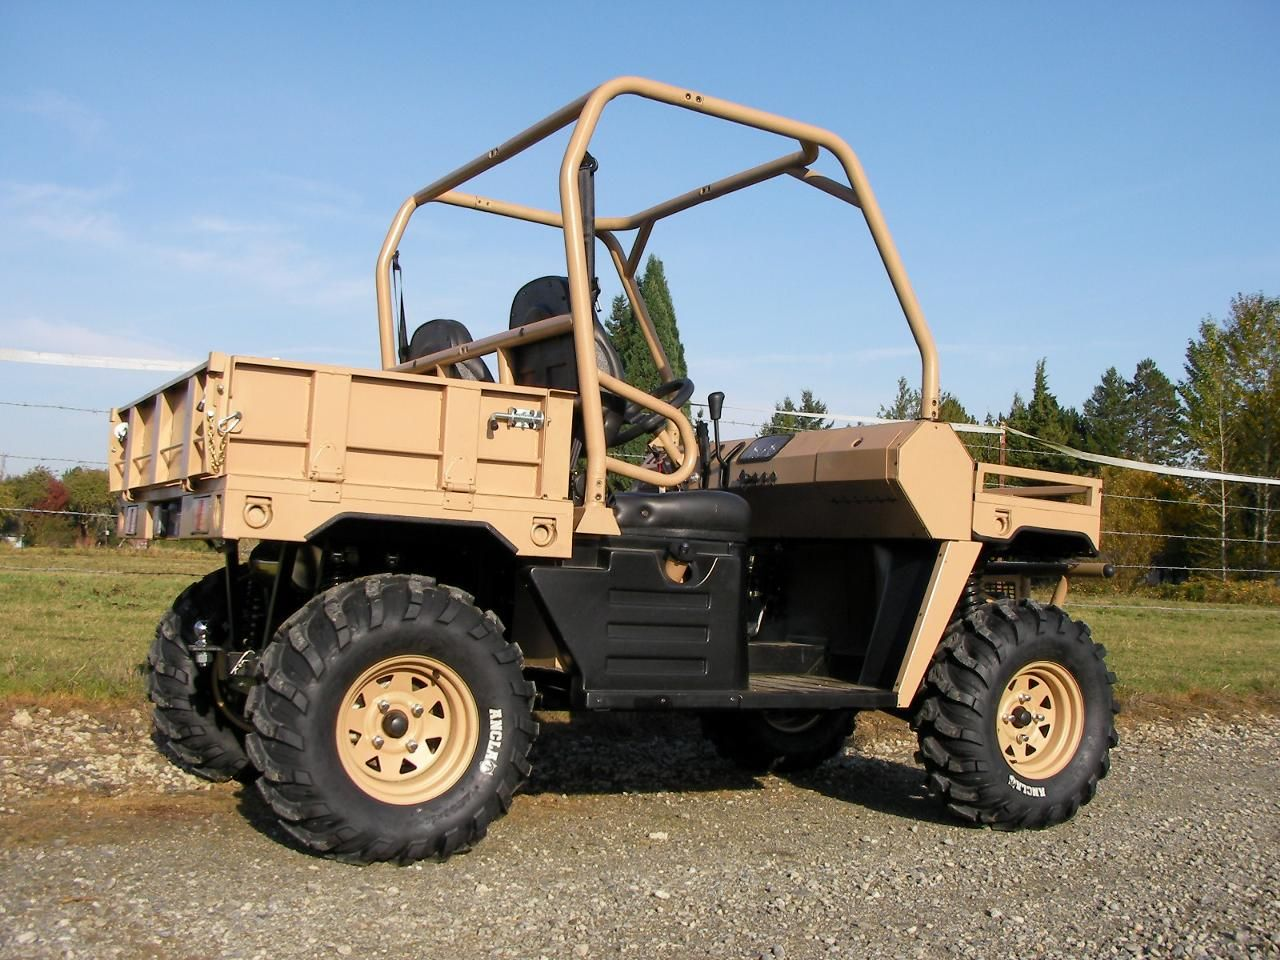 2011 IRONMAN SIDE by SIDE UTV for sale in Portland, OR area